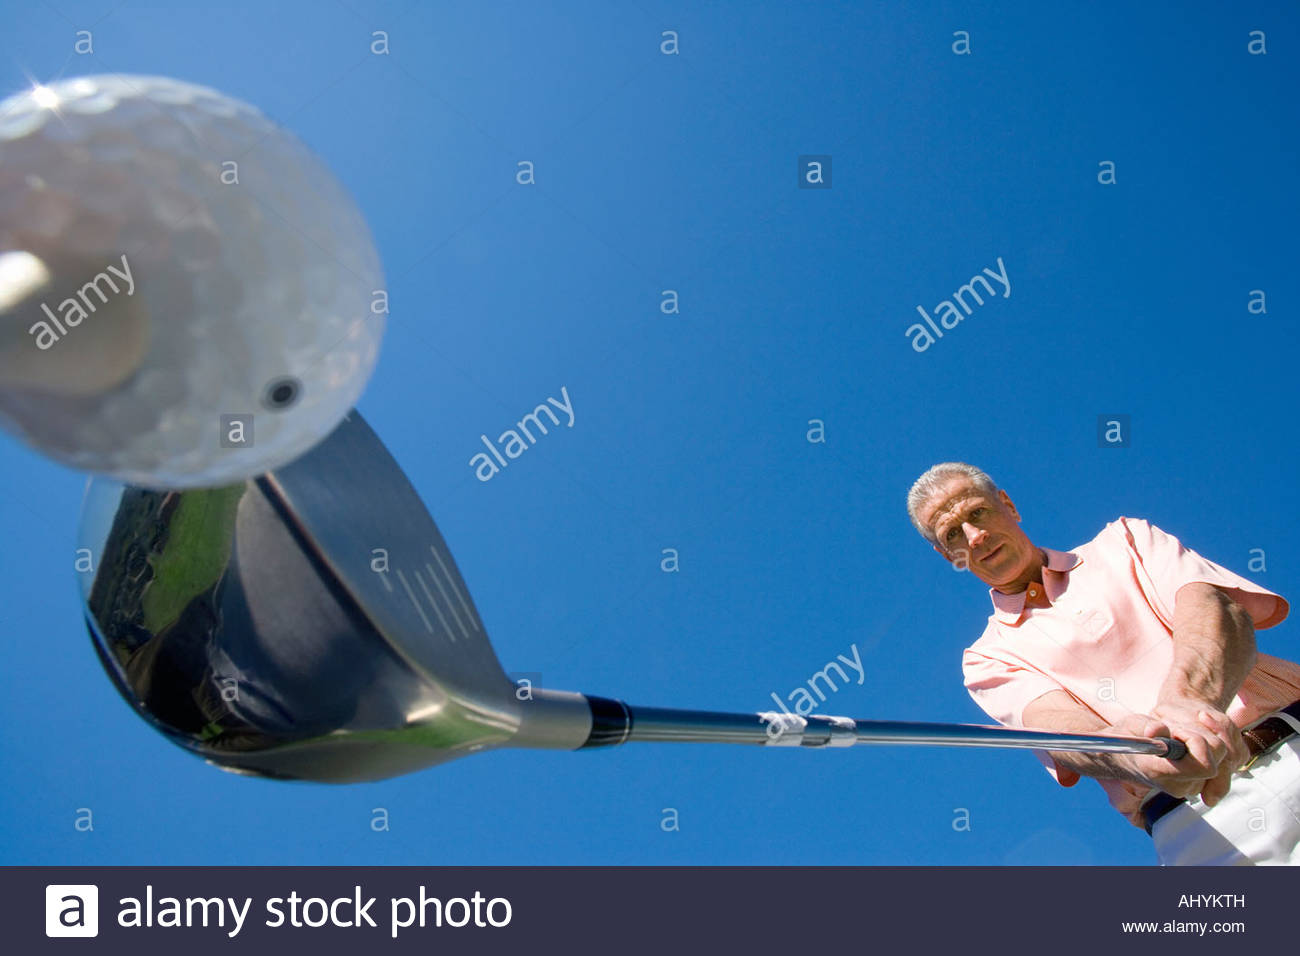 Mature man preparing to tee off on golf course, holding driver, close-up, upward view wide angle - Stock Image